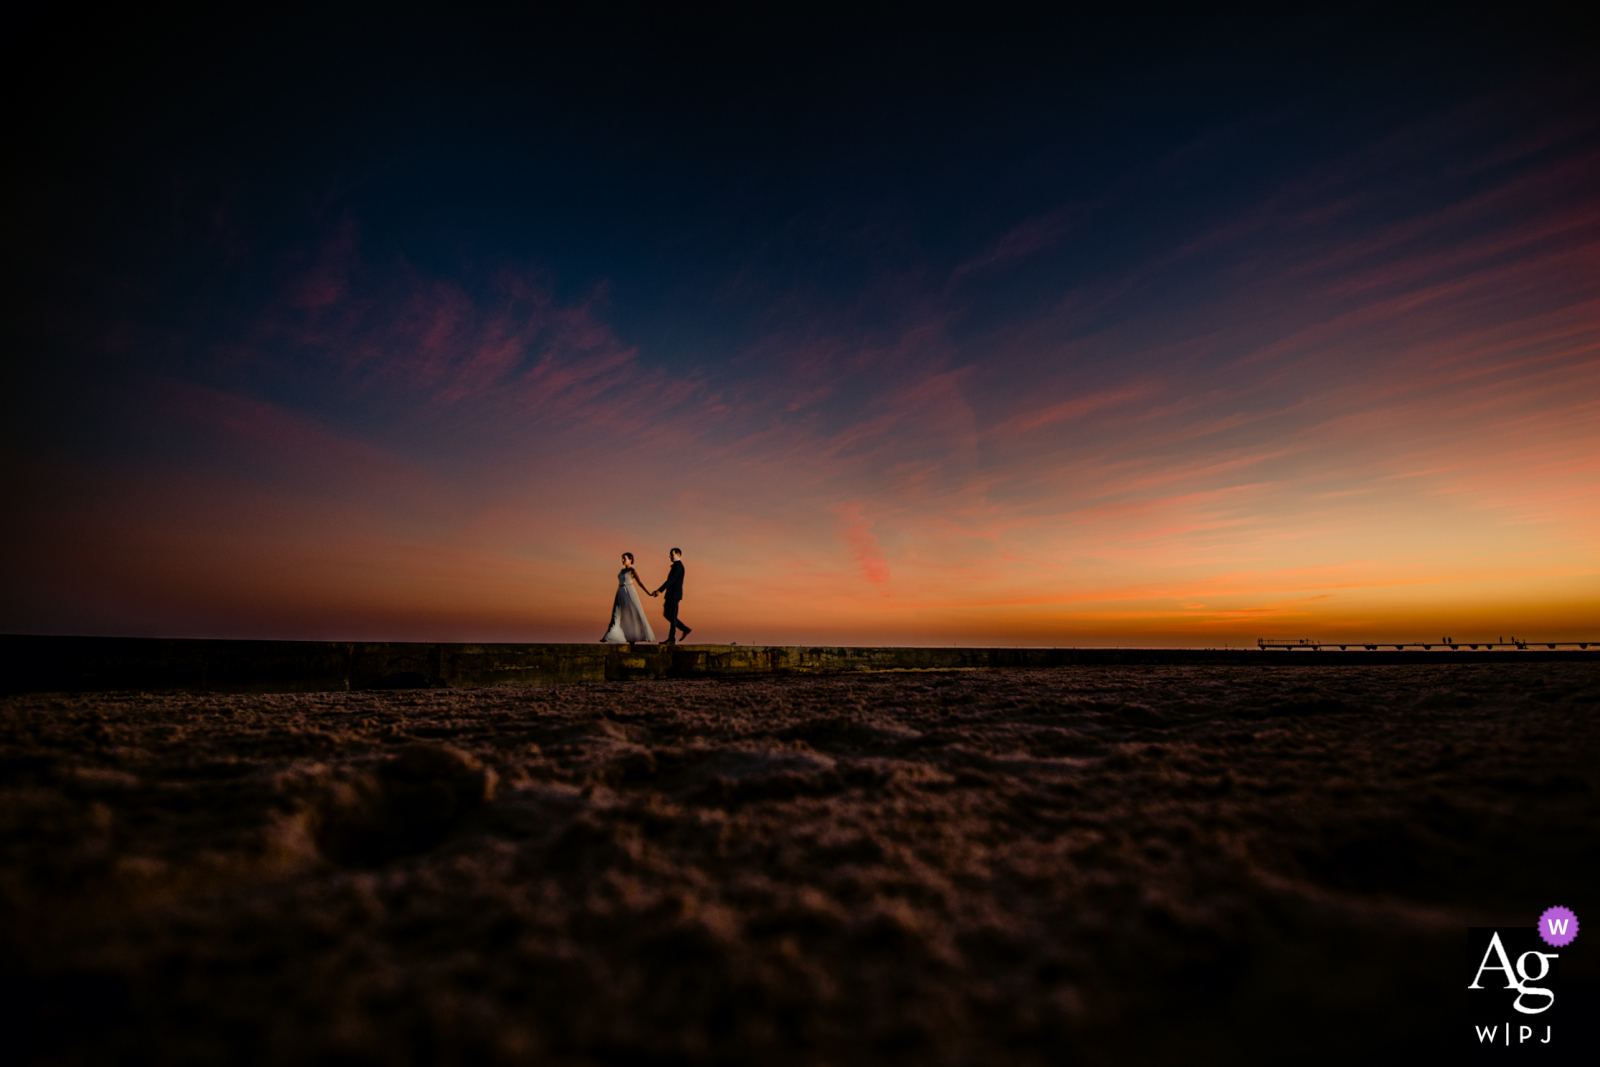 Higgs Beach, Key West, Florida wedding portrait   One of the biggest draws for couples is the sunset in Key West. I set up flash, waited till afterglow